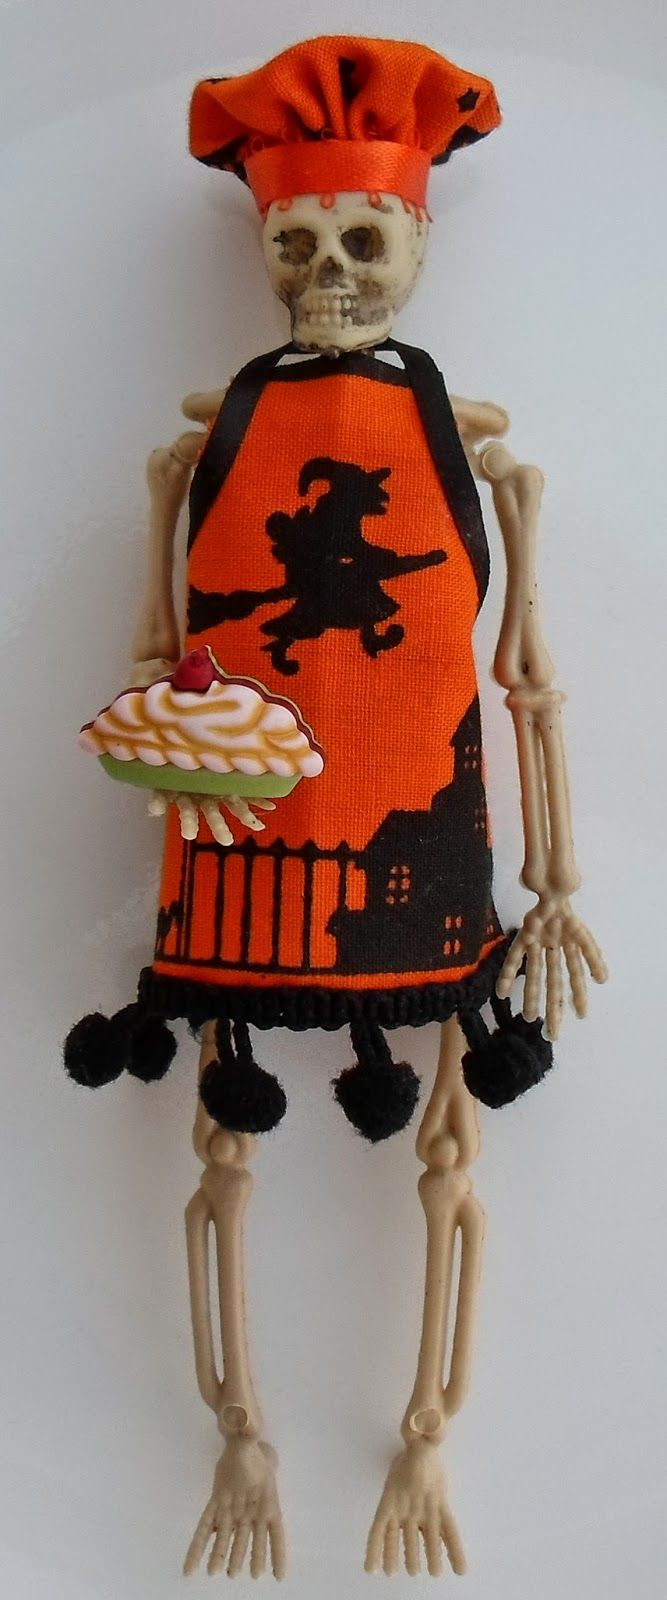 Pin by Margo Wright on Halloween Pinterest Skeletons and Ornament - Homemade Halloween Decorations Pinterest